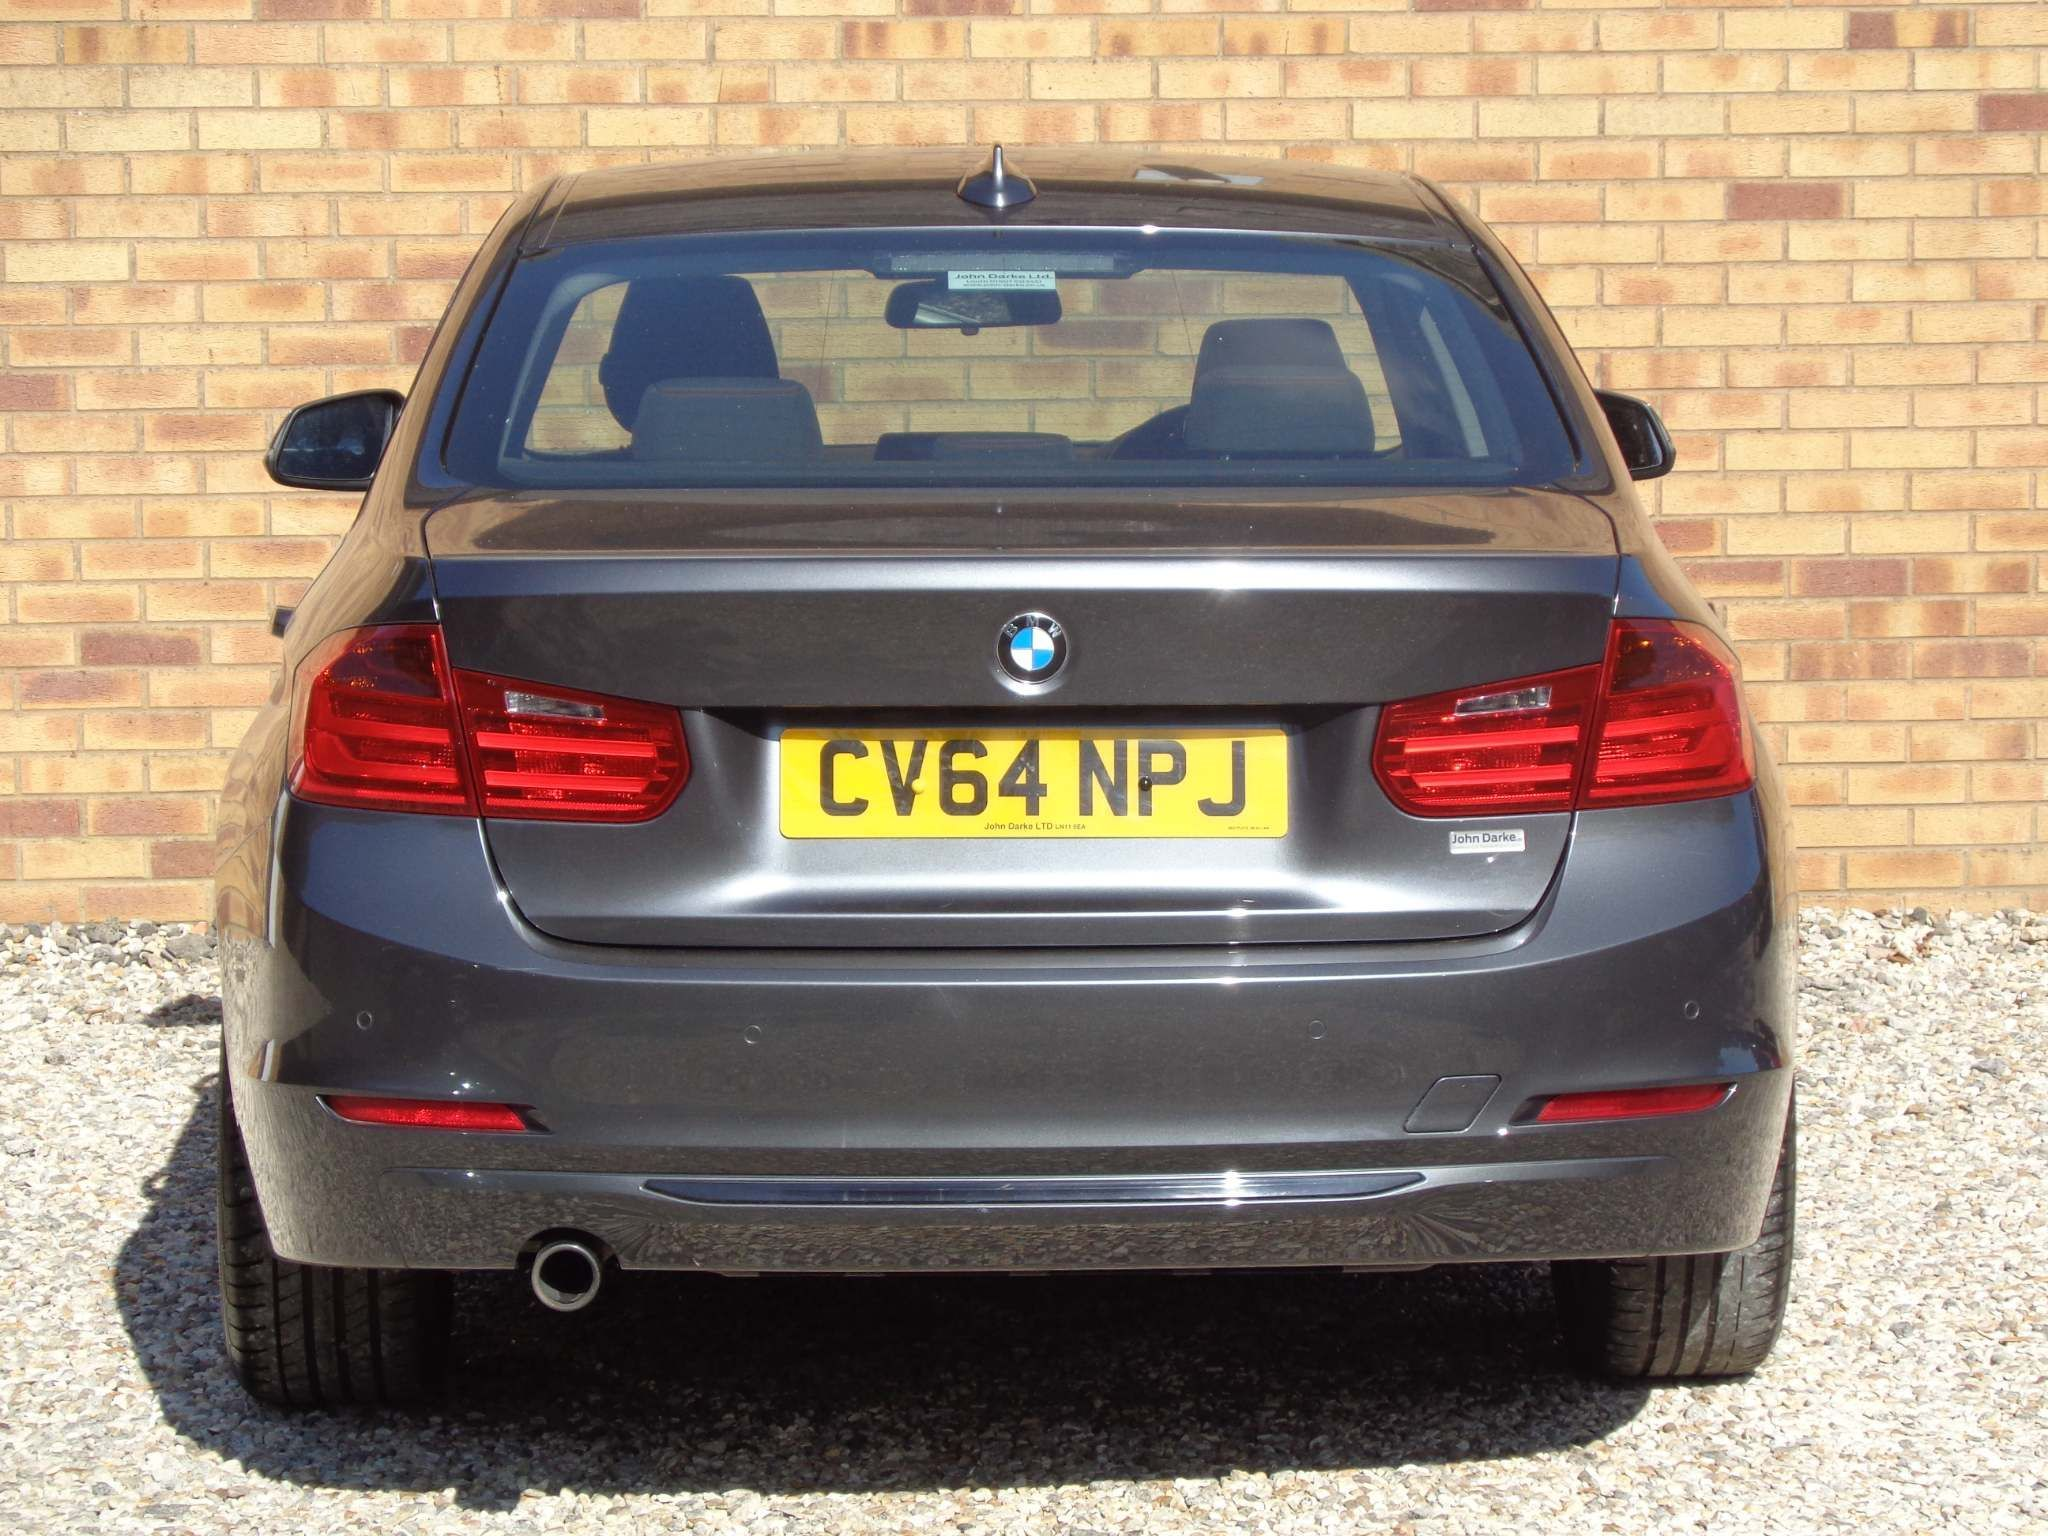 http://pictures2.autotrader.co.uk/imgser-uk/servlet/media?id=cdd4ff7cf14542539c9a9a9a78d69488